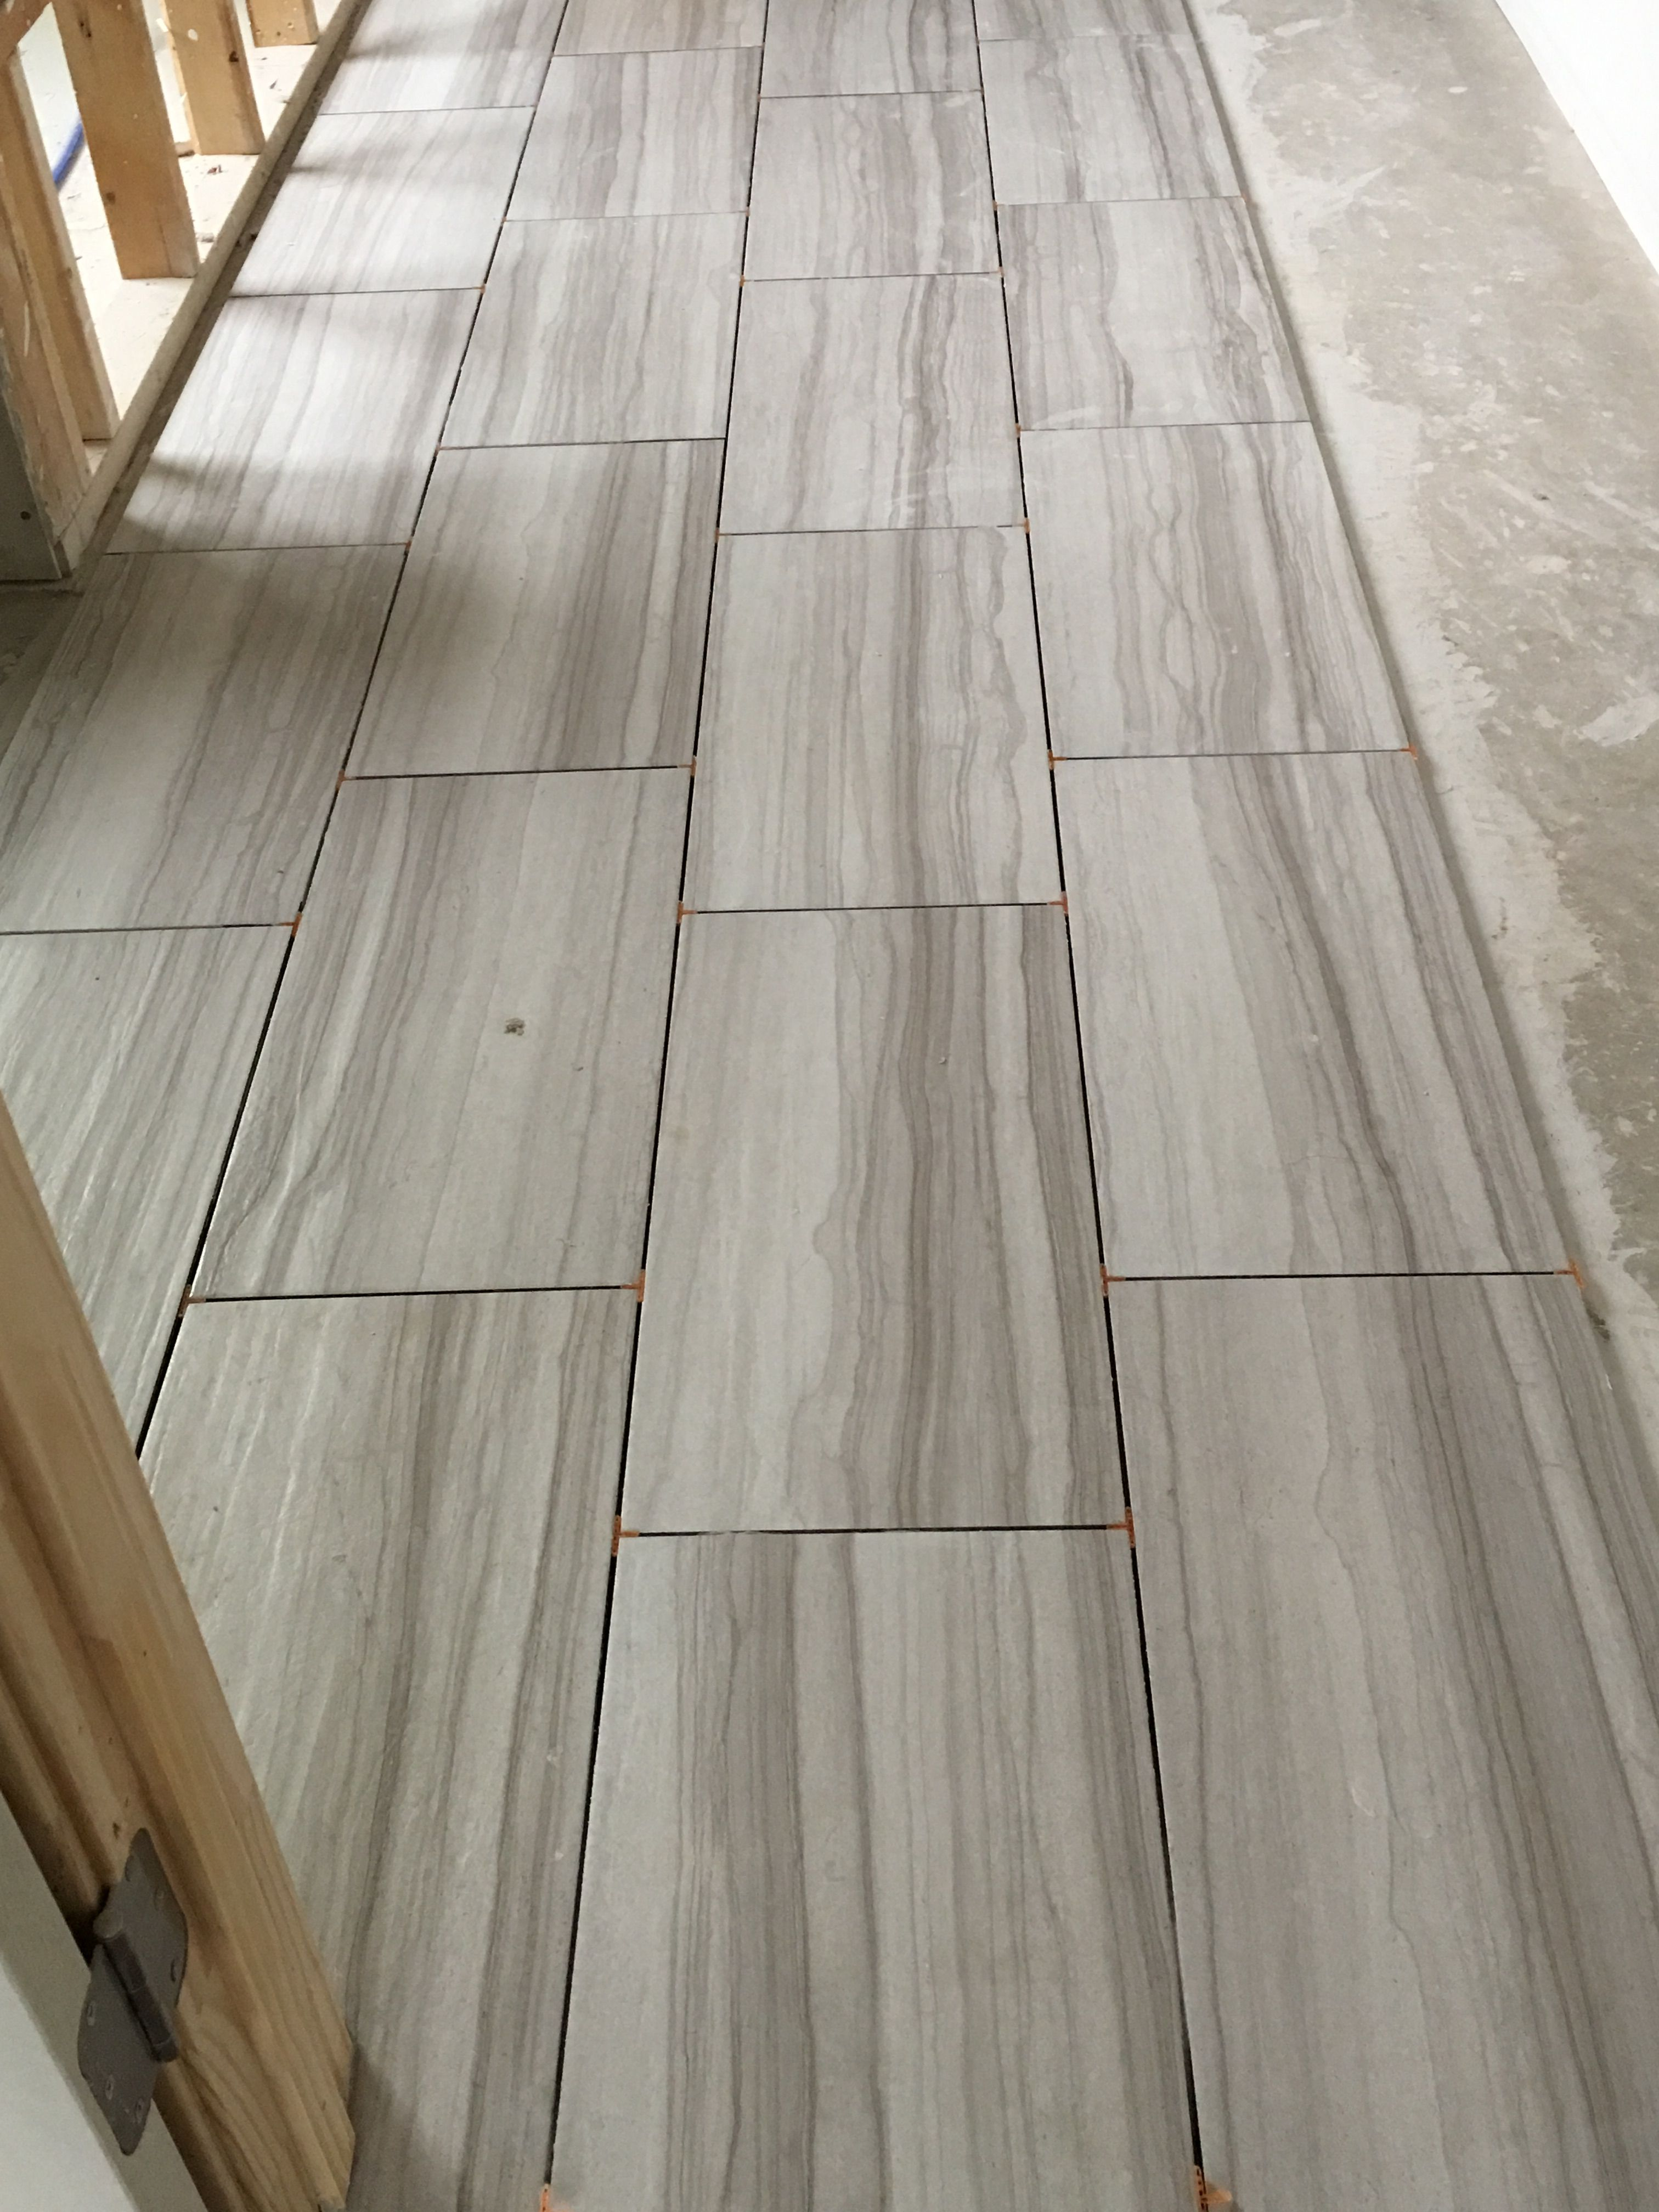 grout lines currently ungrouted but